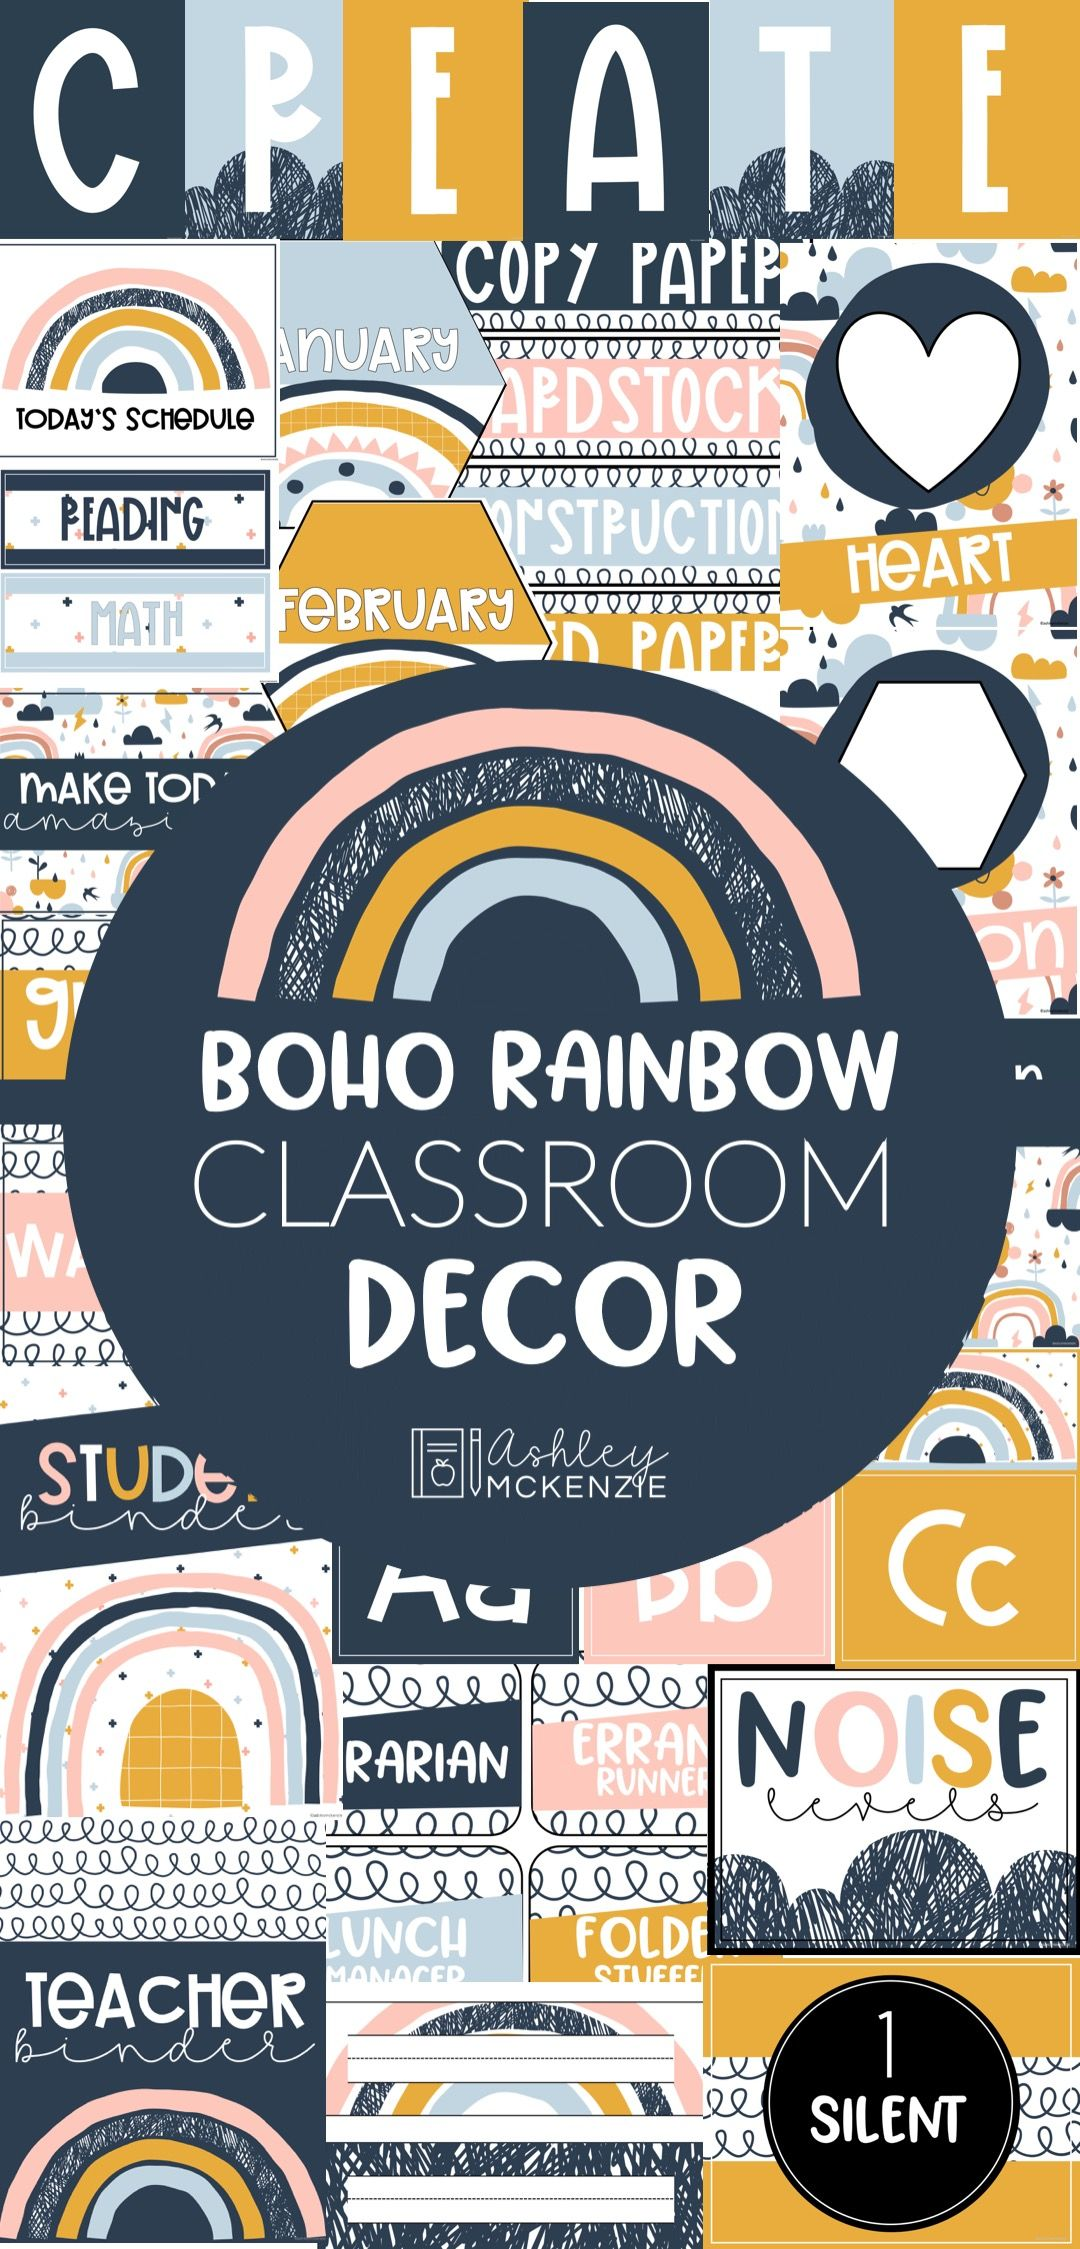 Boho Rainbow Classroom Decorations